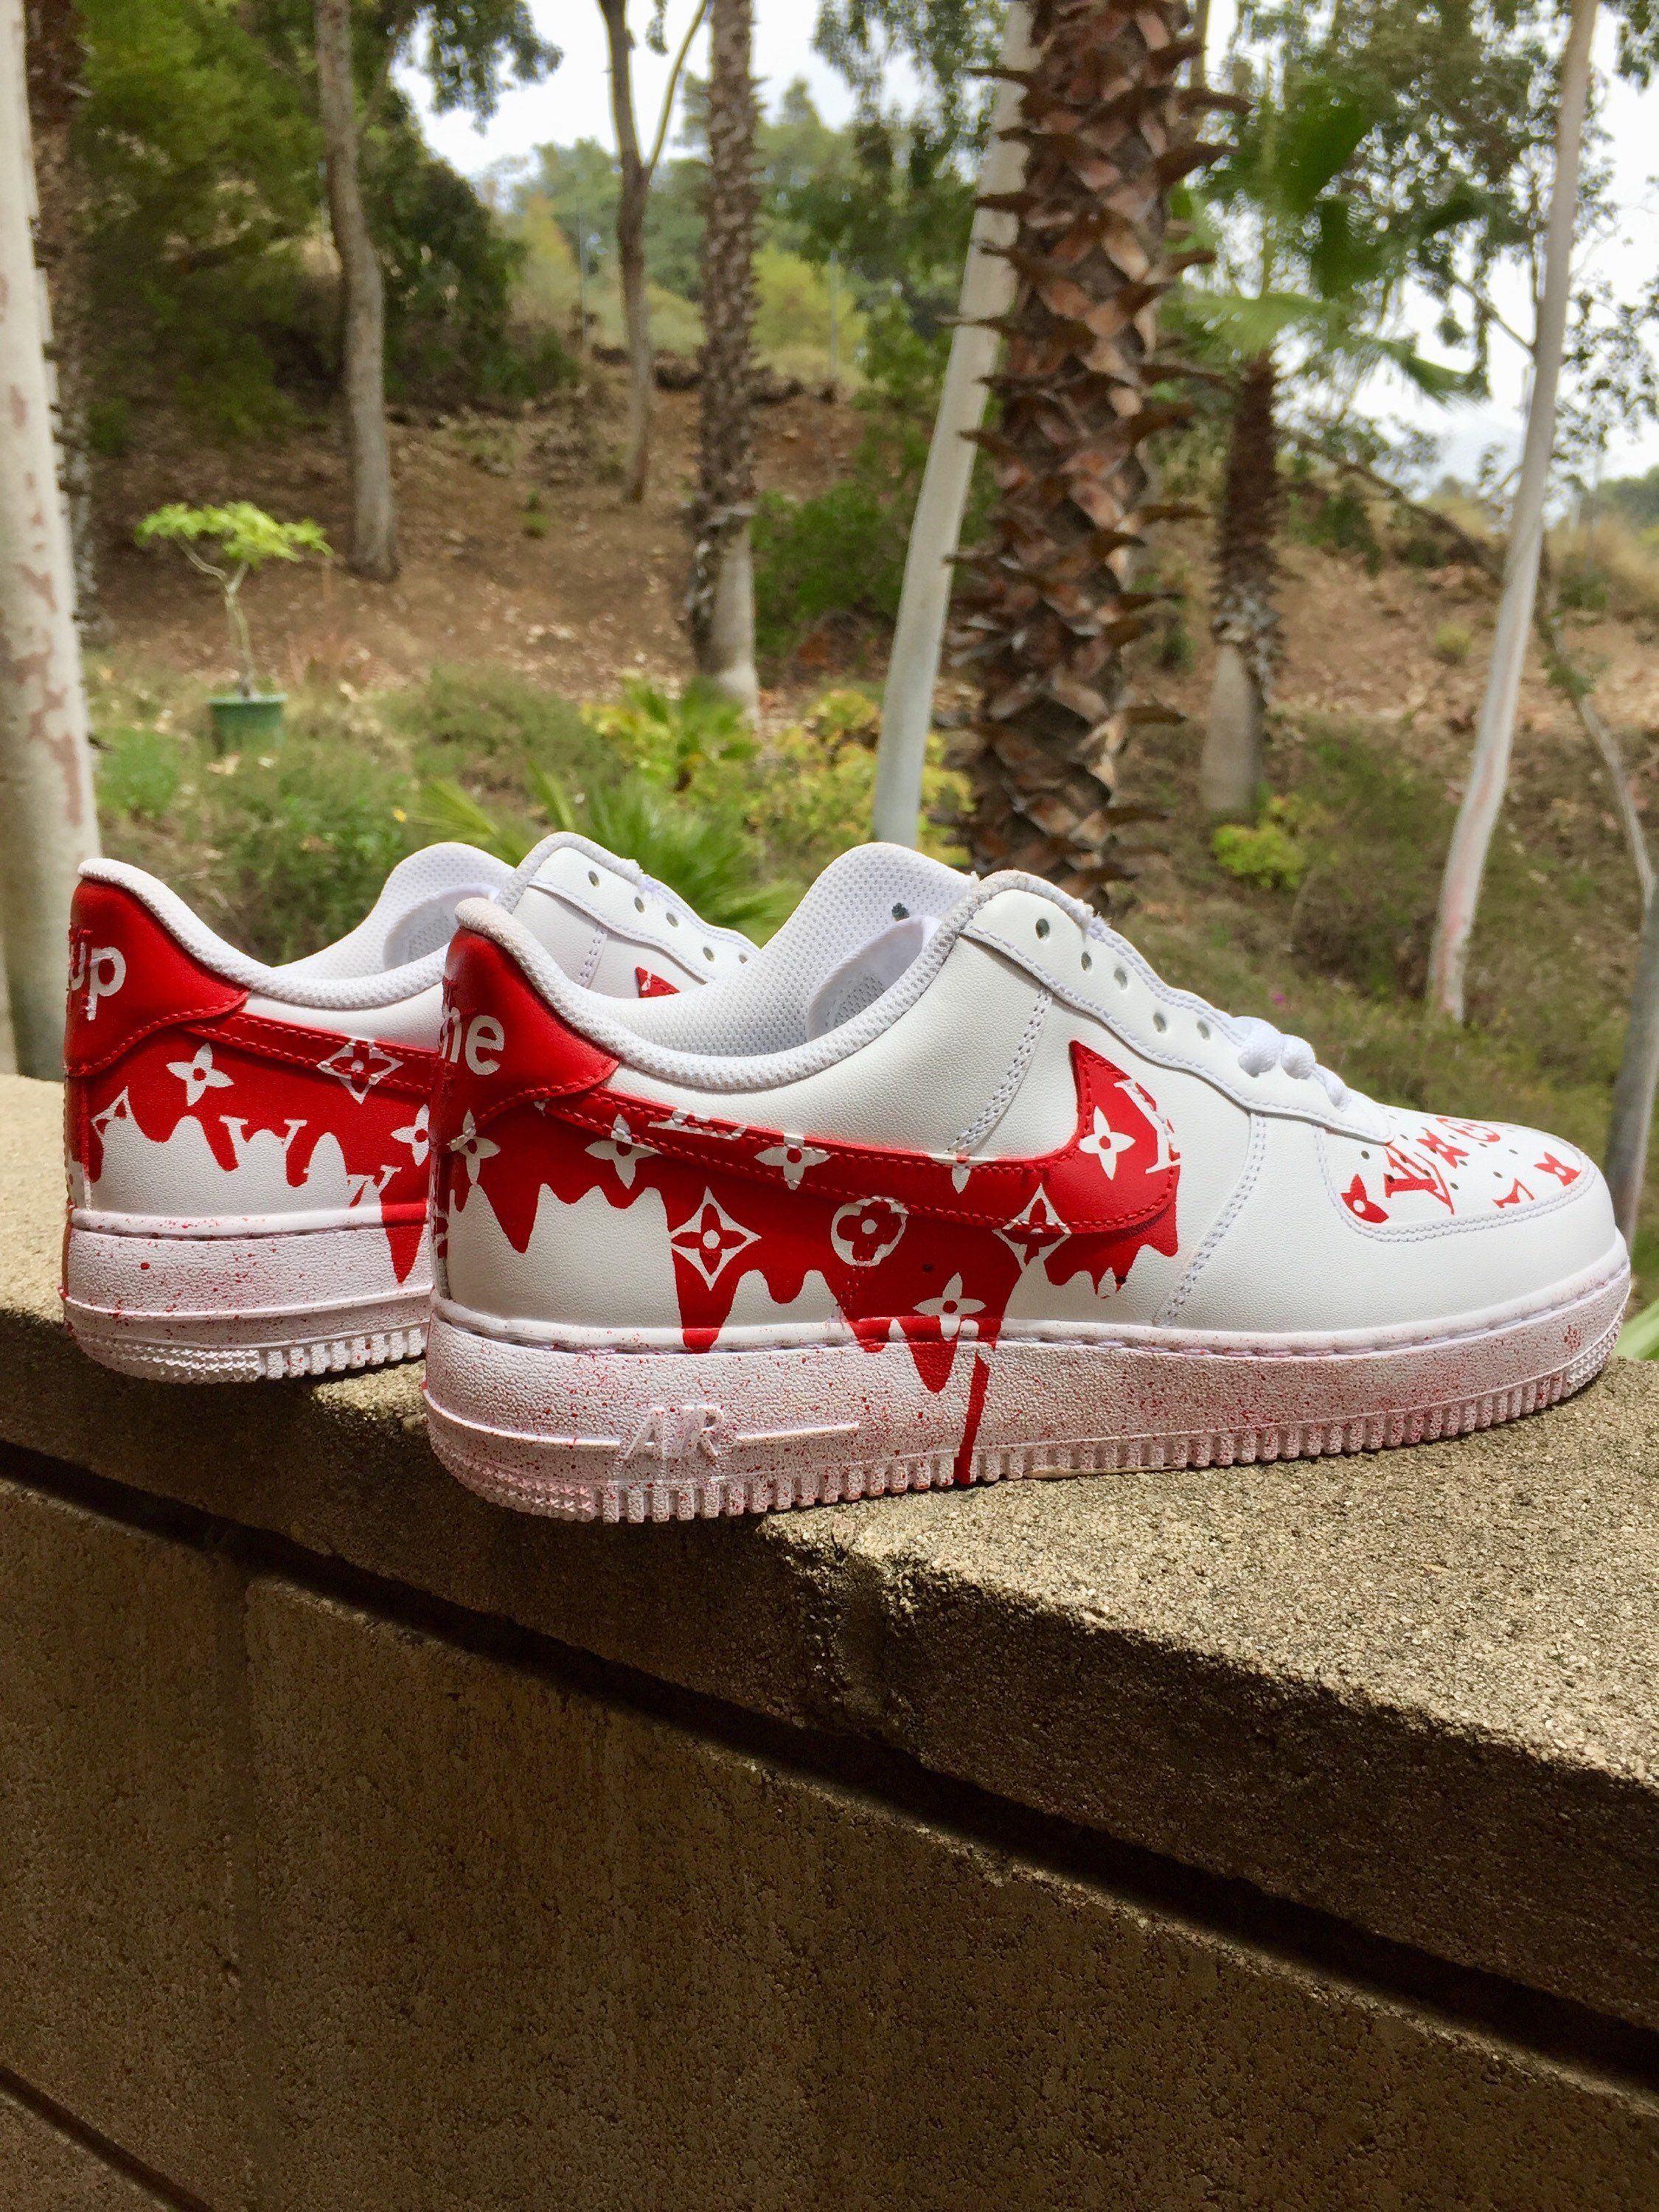 Supreme Lv Air Force 1 Clothing